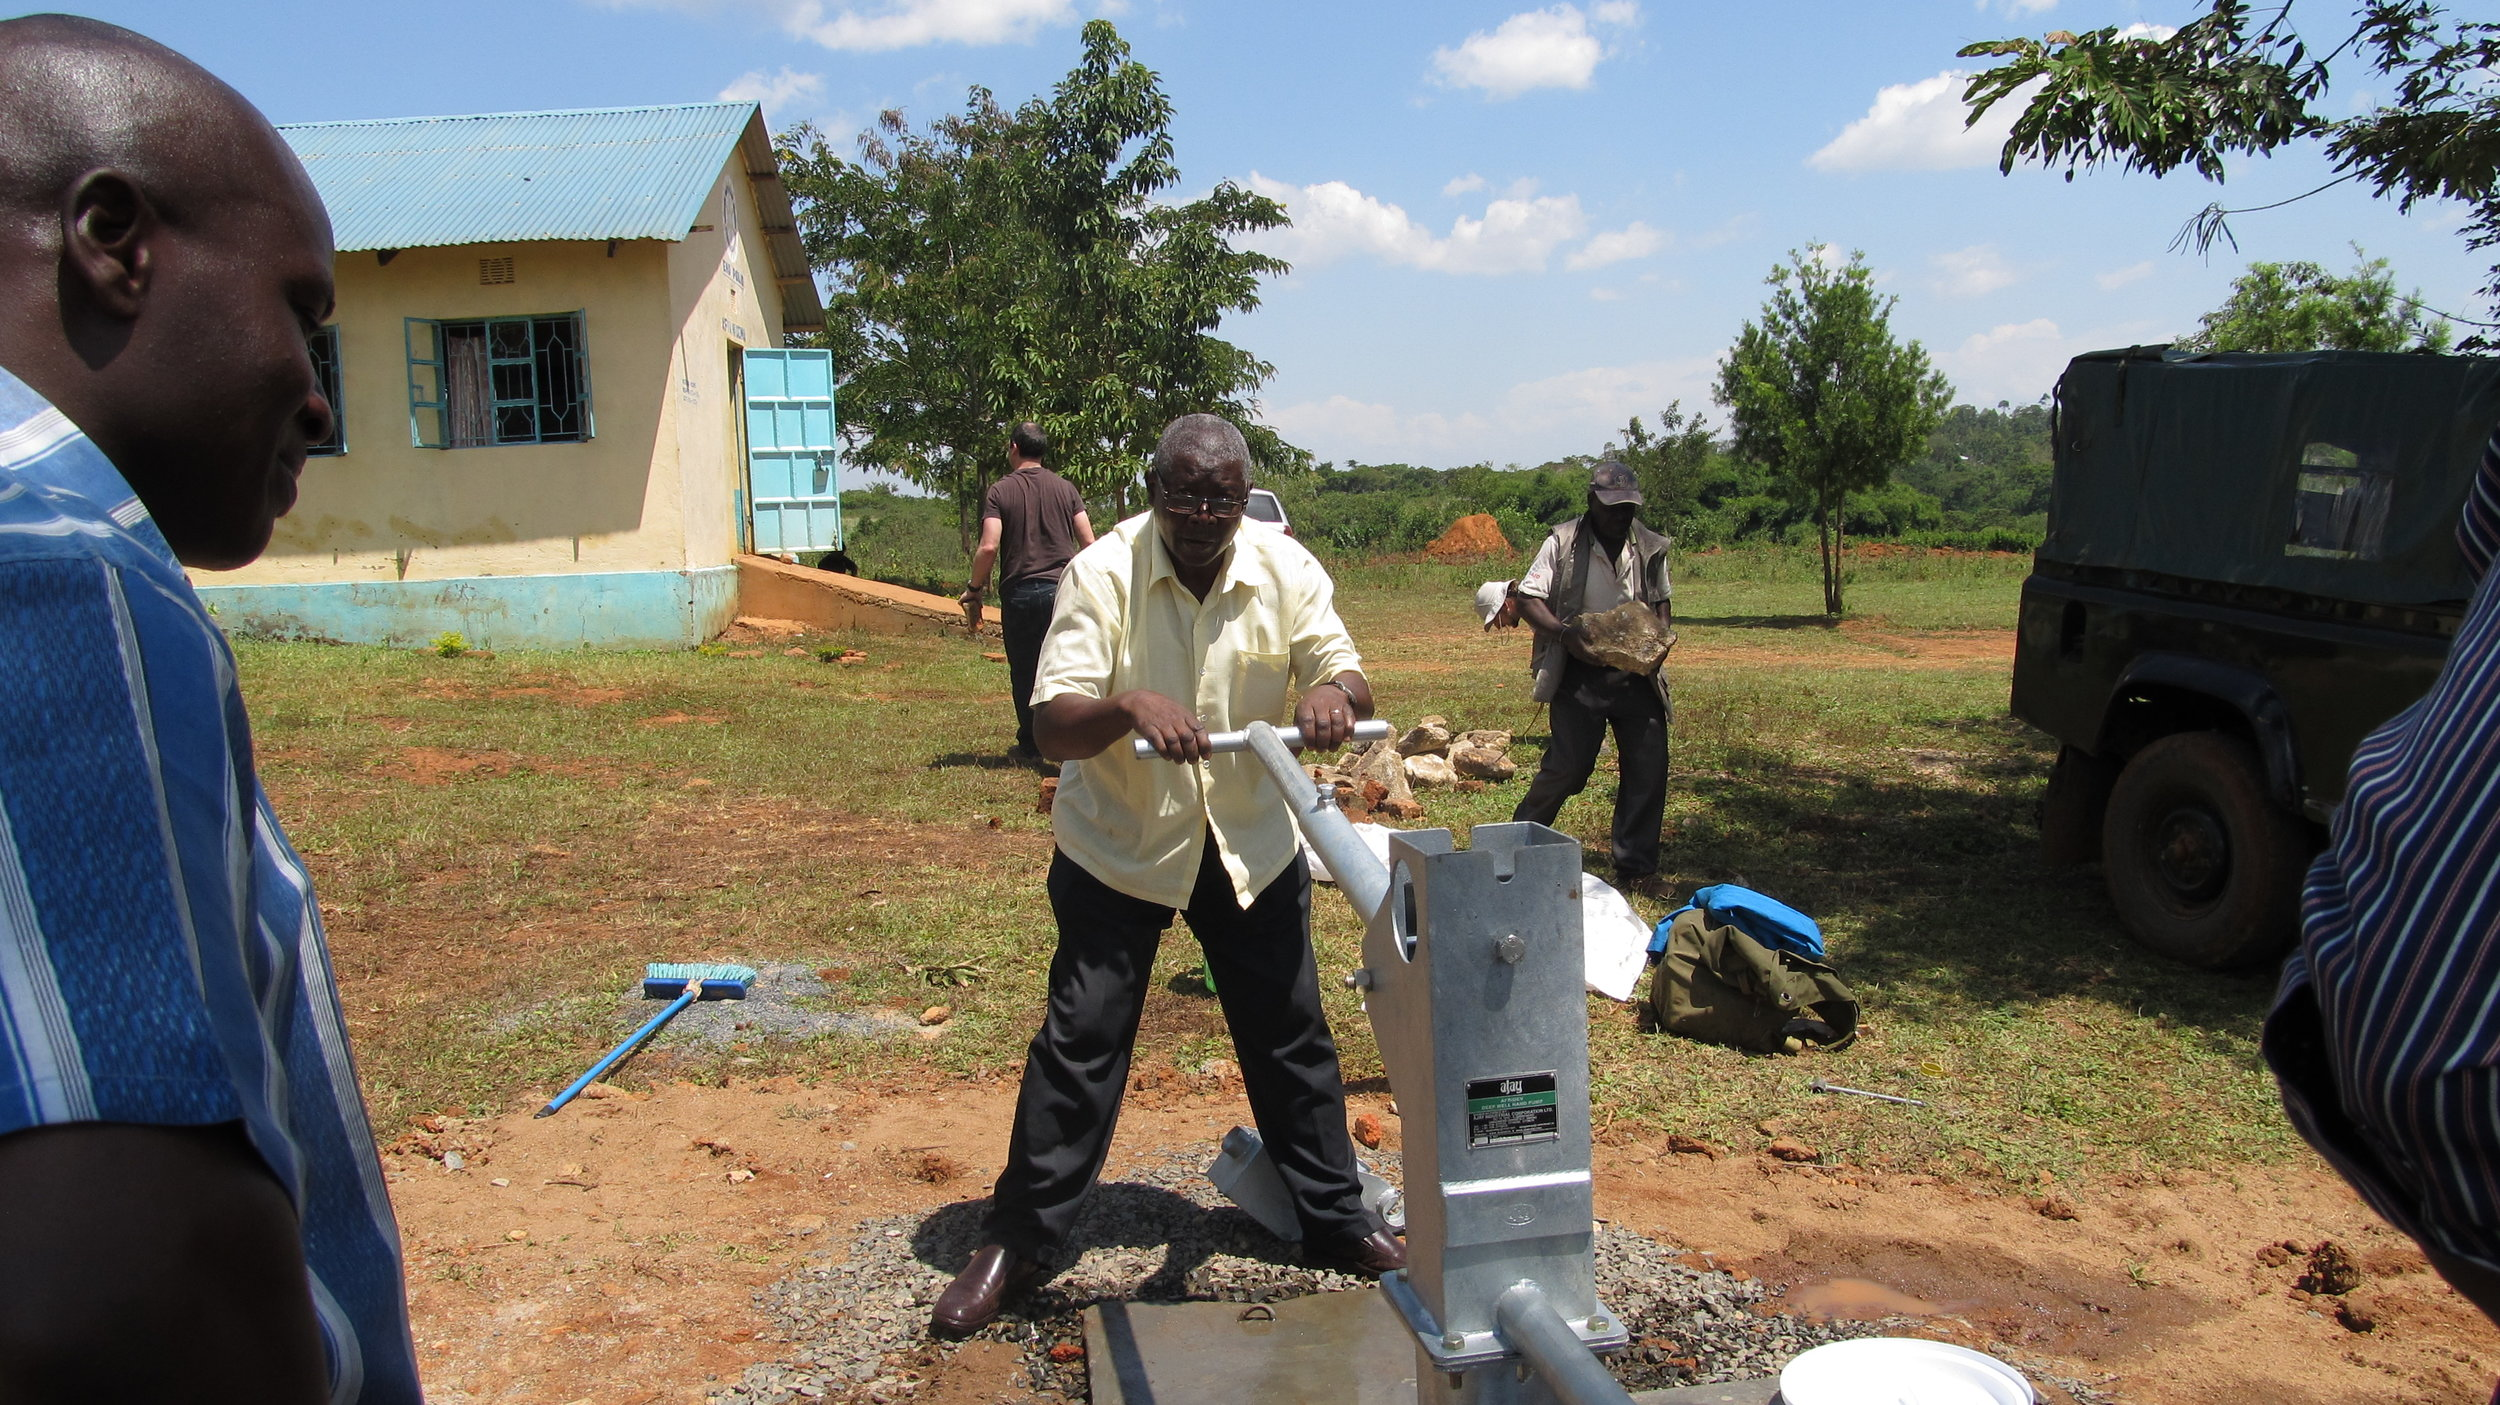 George pumping the new well.